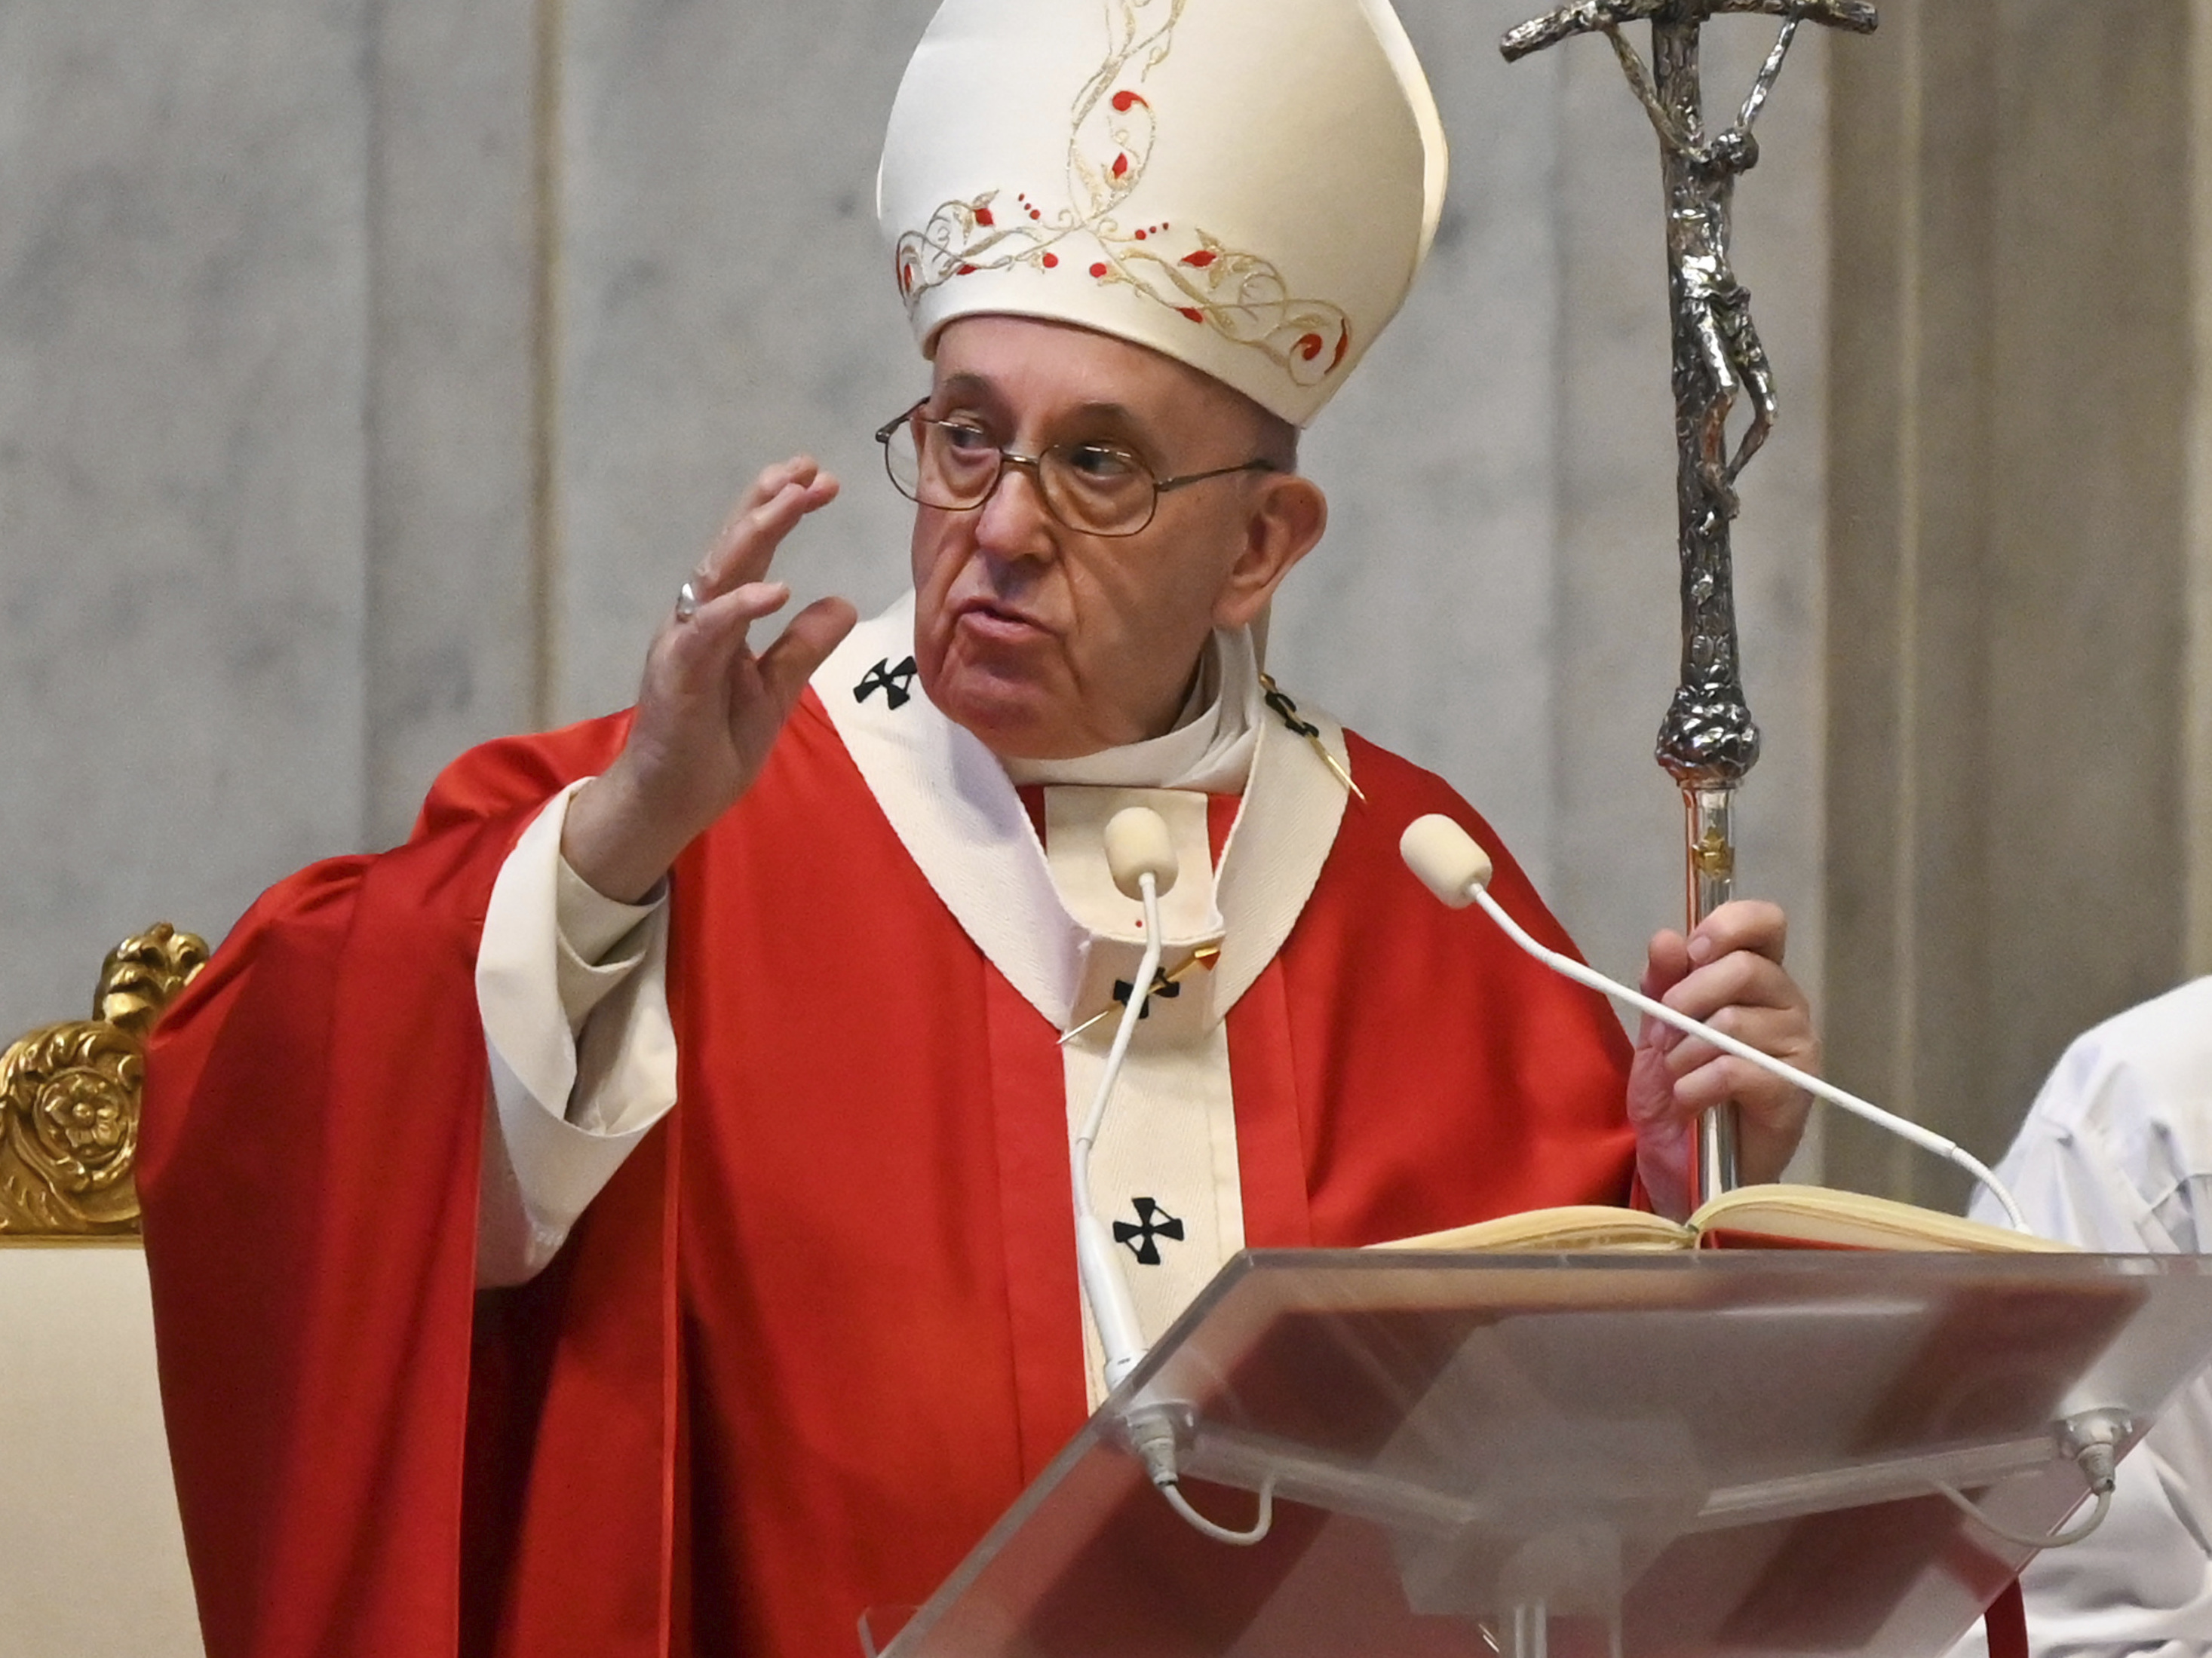 Why Gossip Is Worse Than COVID19 - Pope Francis Reveals